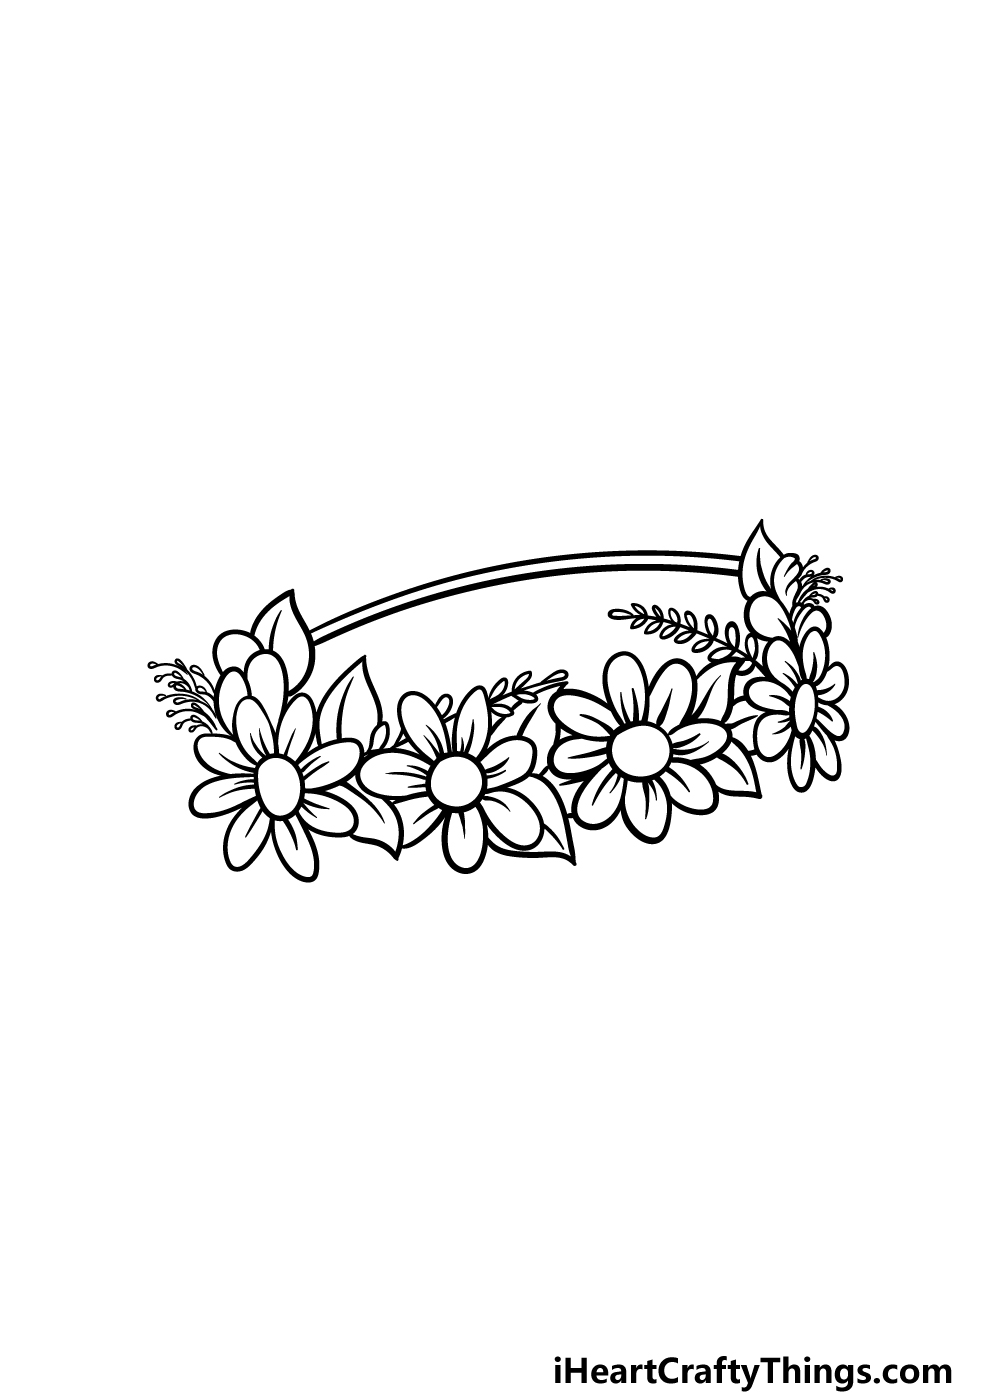 drawing a flower crown step 5